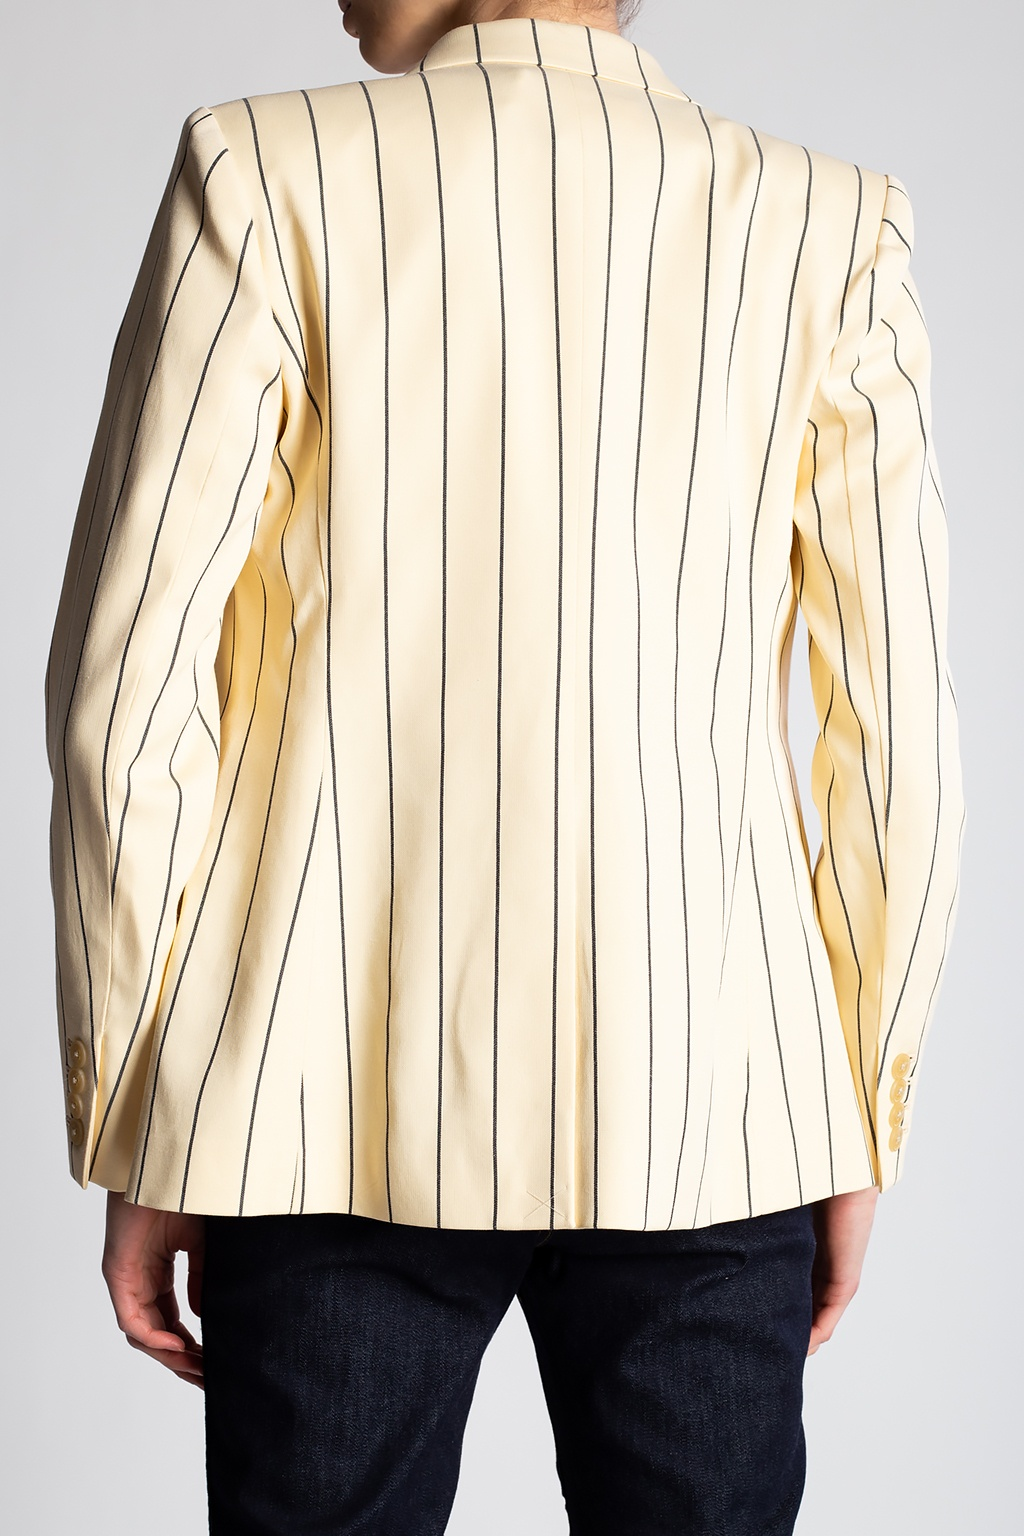 Tory Burch Double-breasted blazer